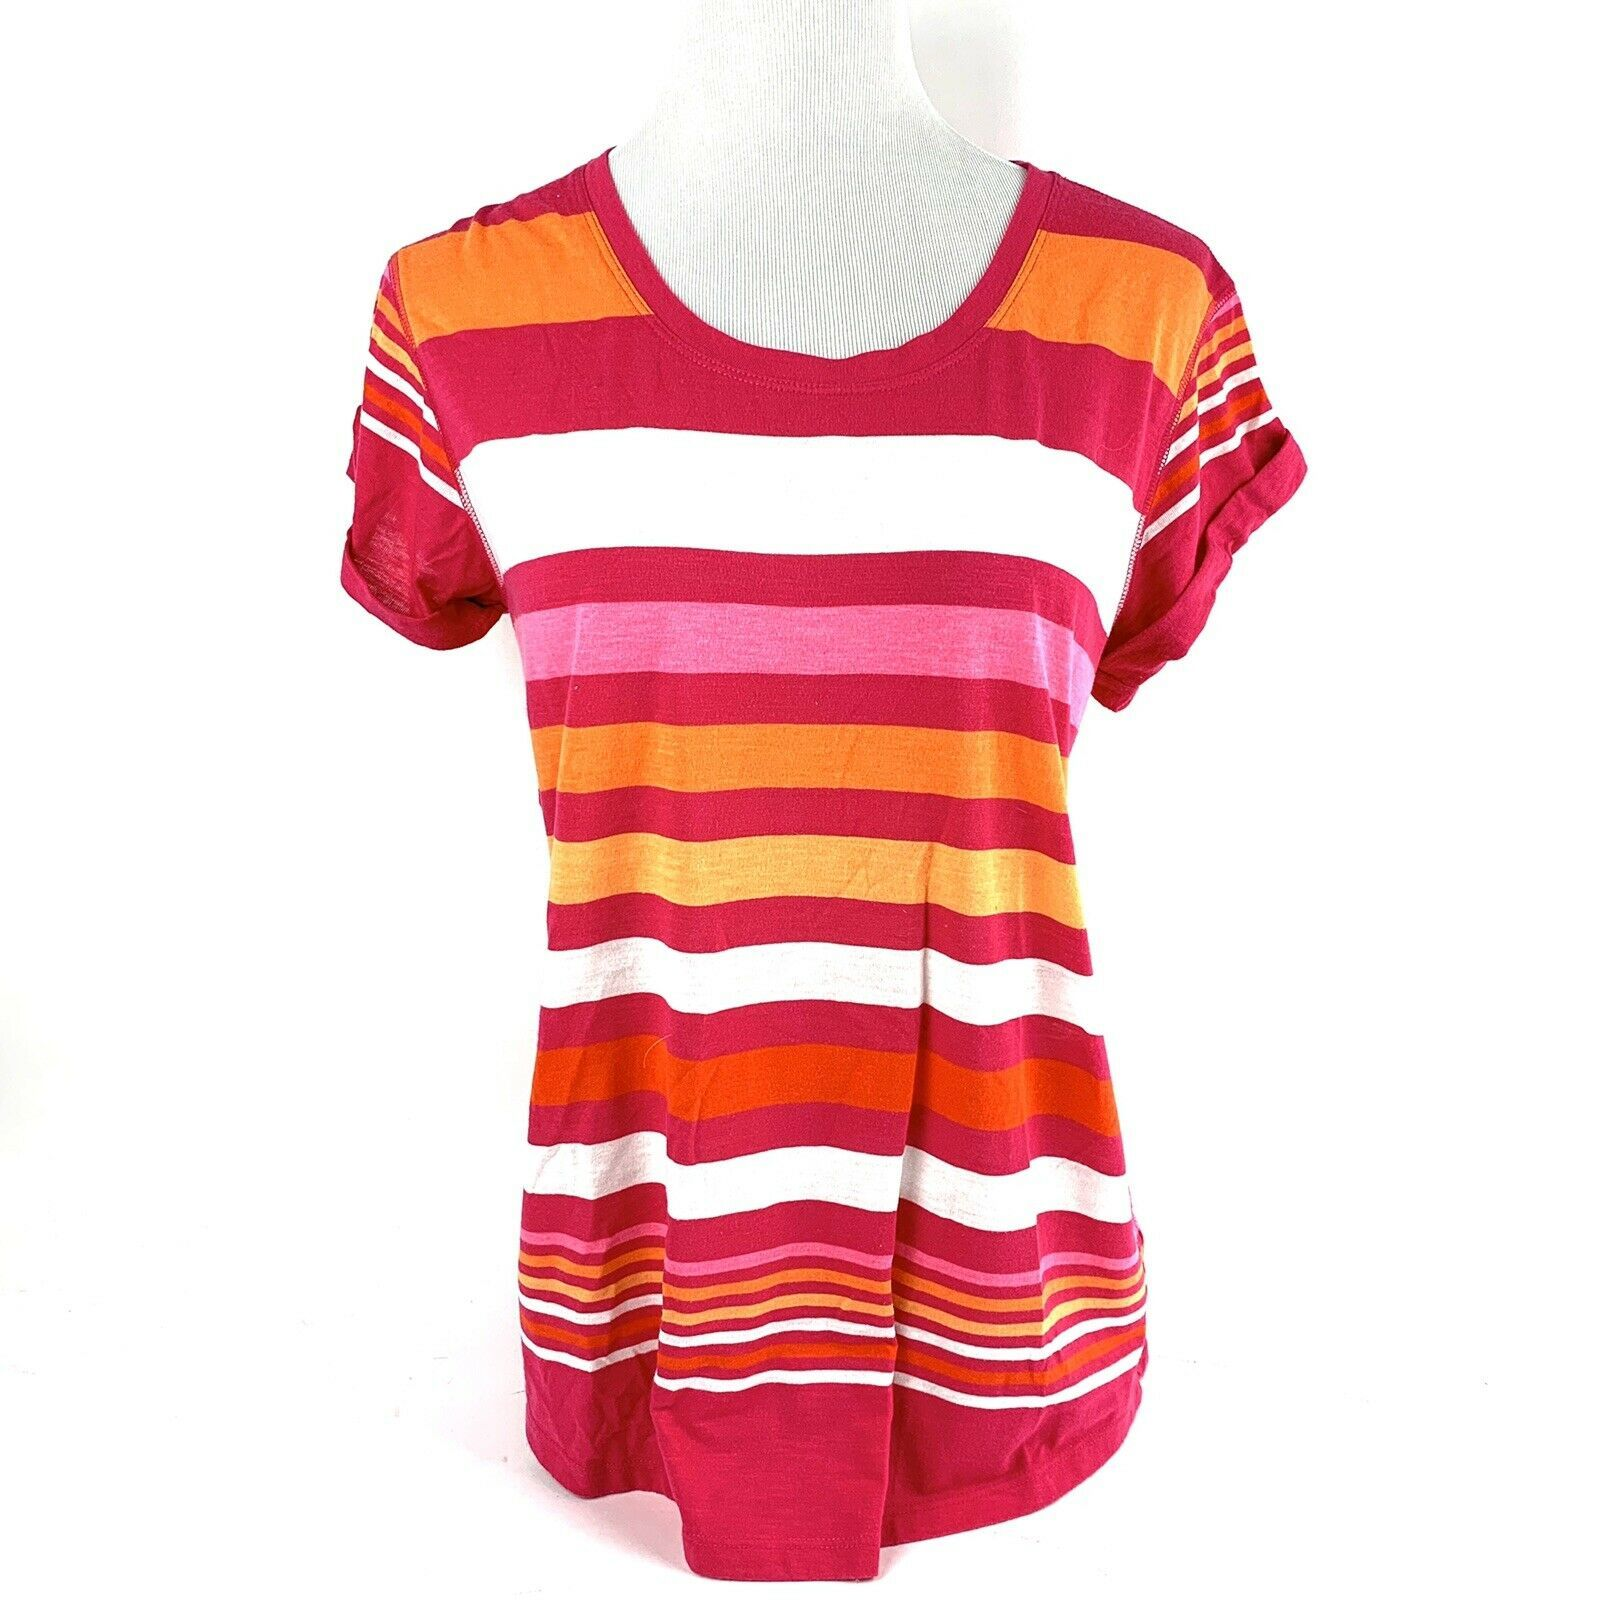 A.N.A. Women's Size M Pullover Short Sleeve Cotton Striped Mult-color T-Shirt EC